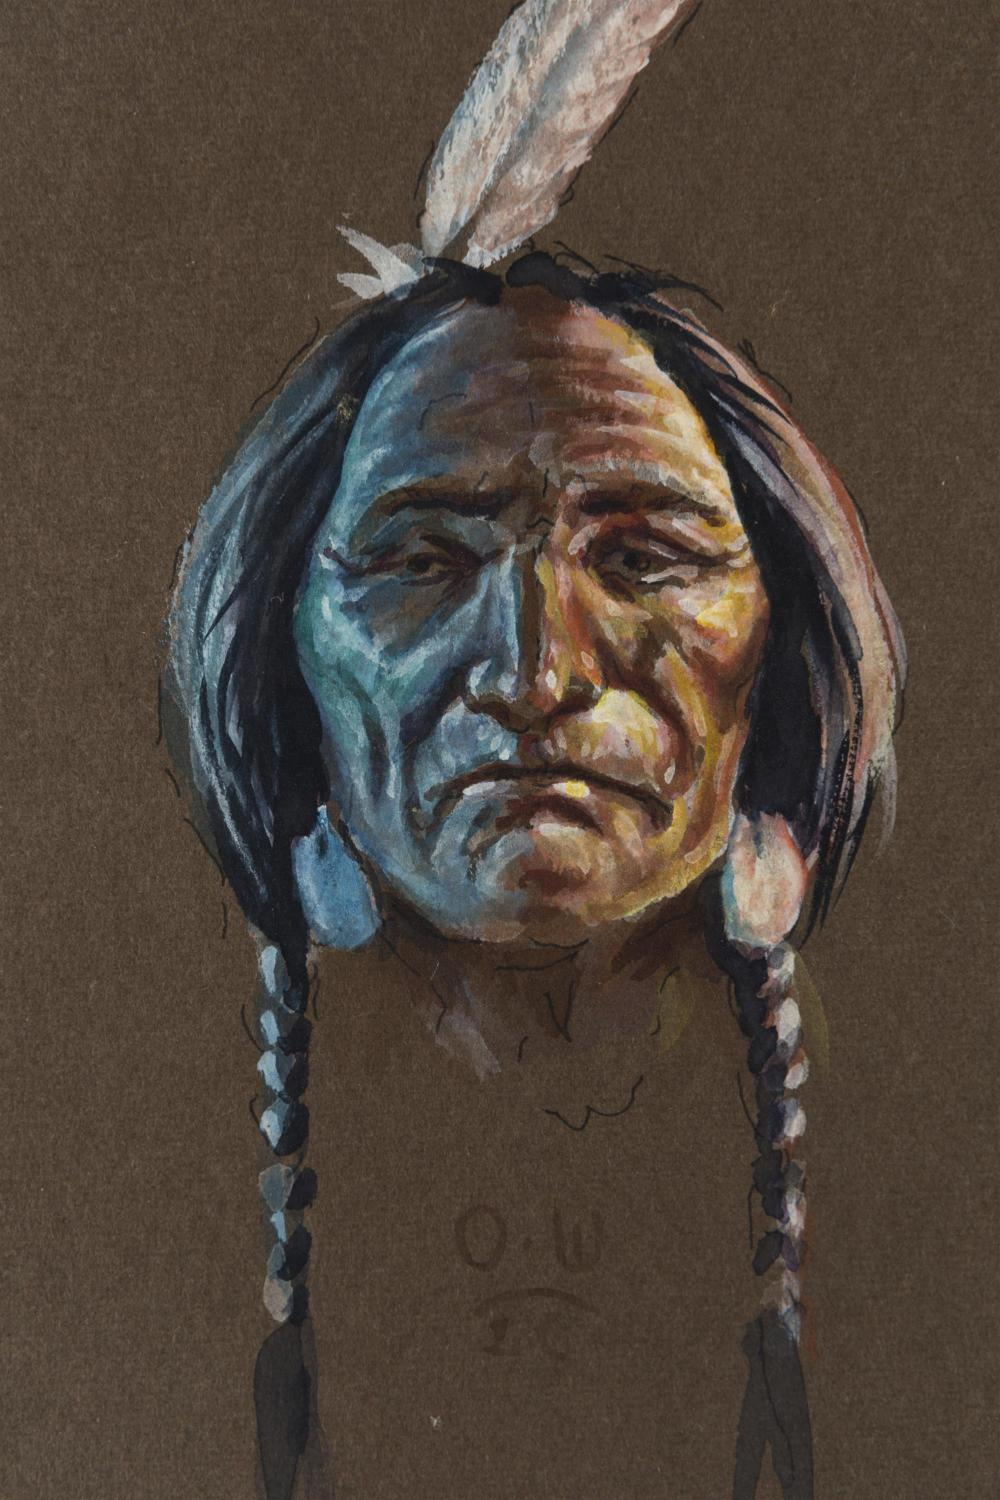 Olaf Wieghorst, (1899-1988 El Cajon, CA), Portrait of an American Indian brave, Gouache on paper under glass, Sight: 6.75